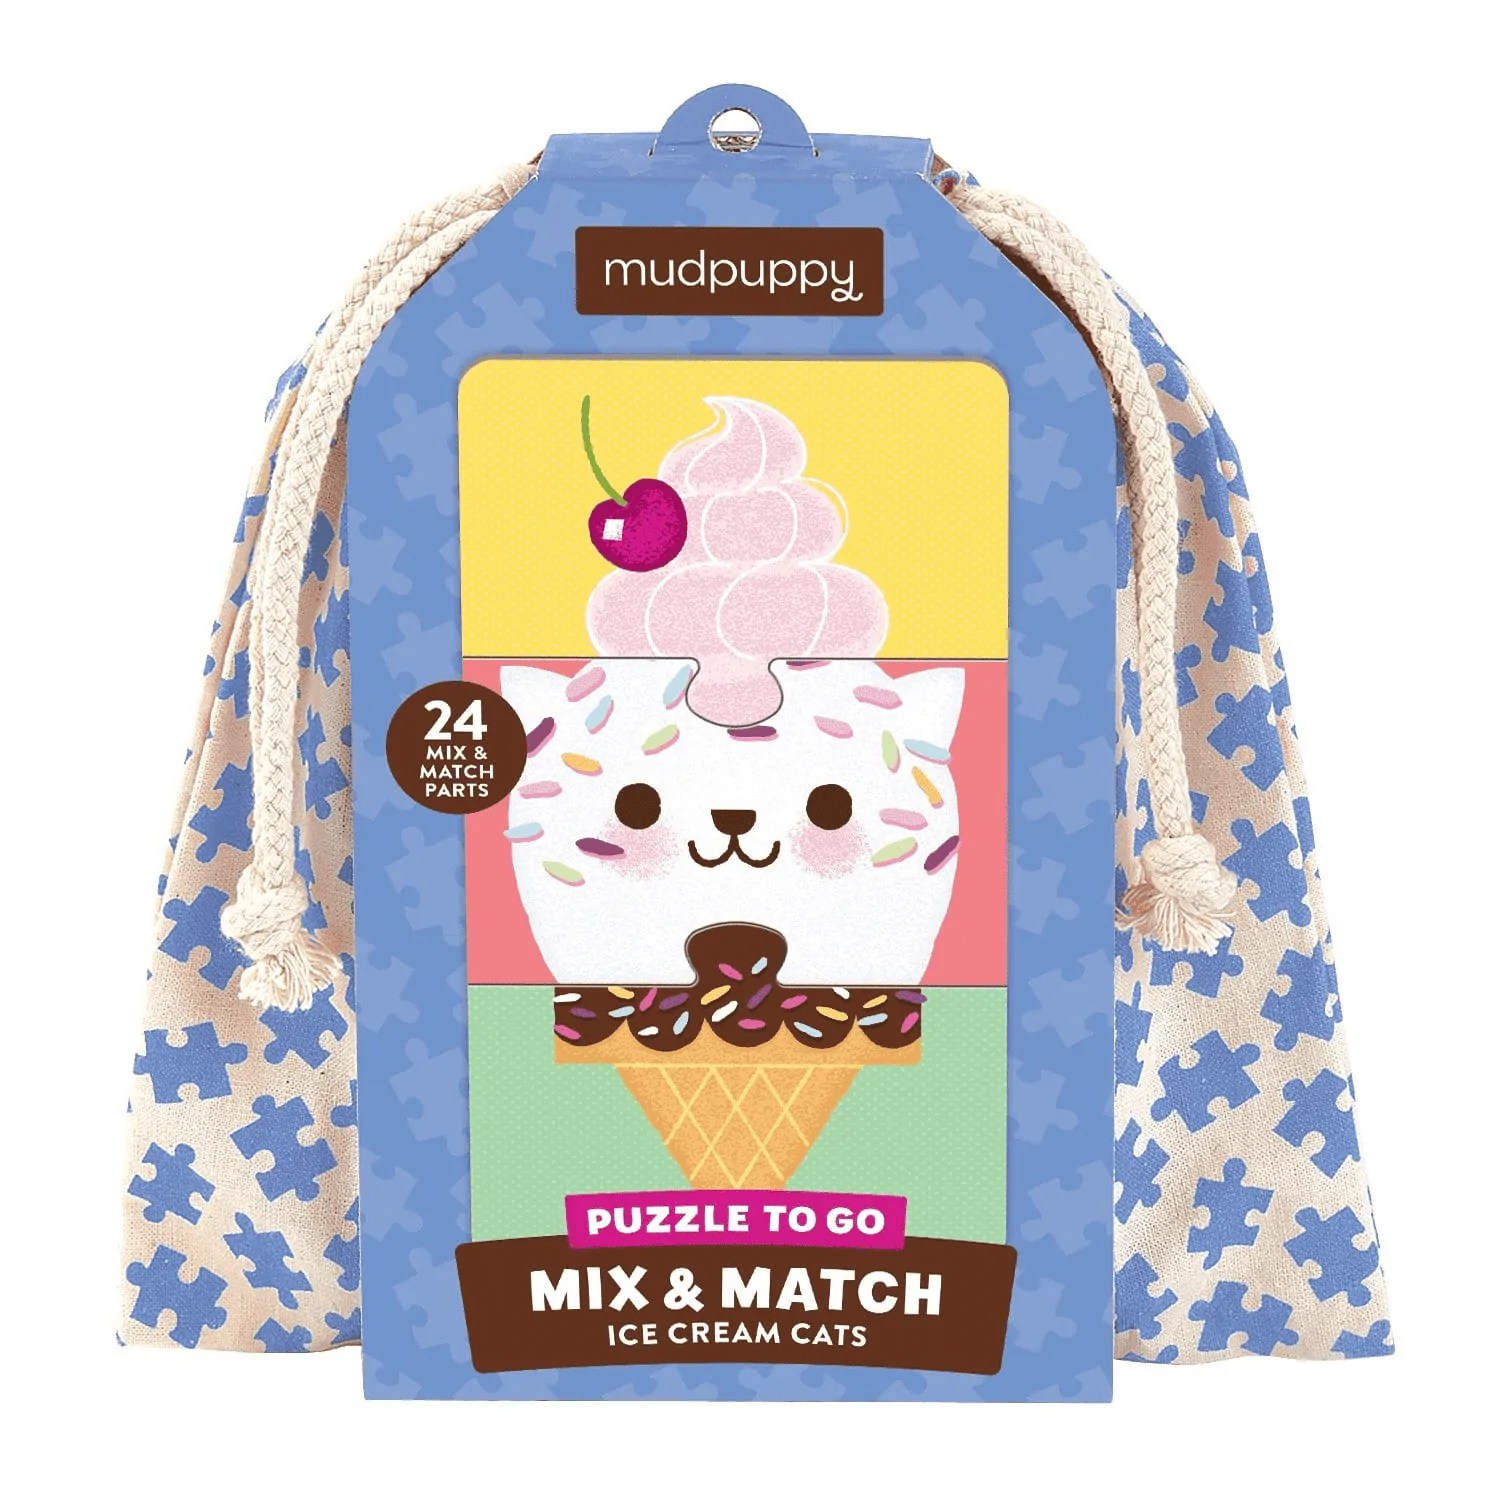 Mix And Match Ice Cream Cats Mix Match Puzzle To Go